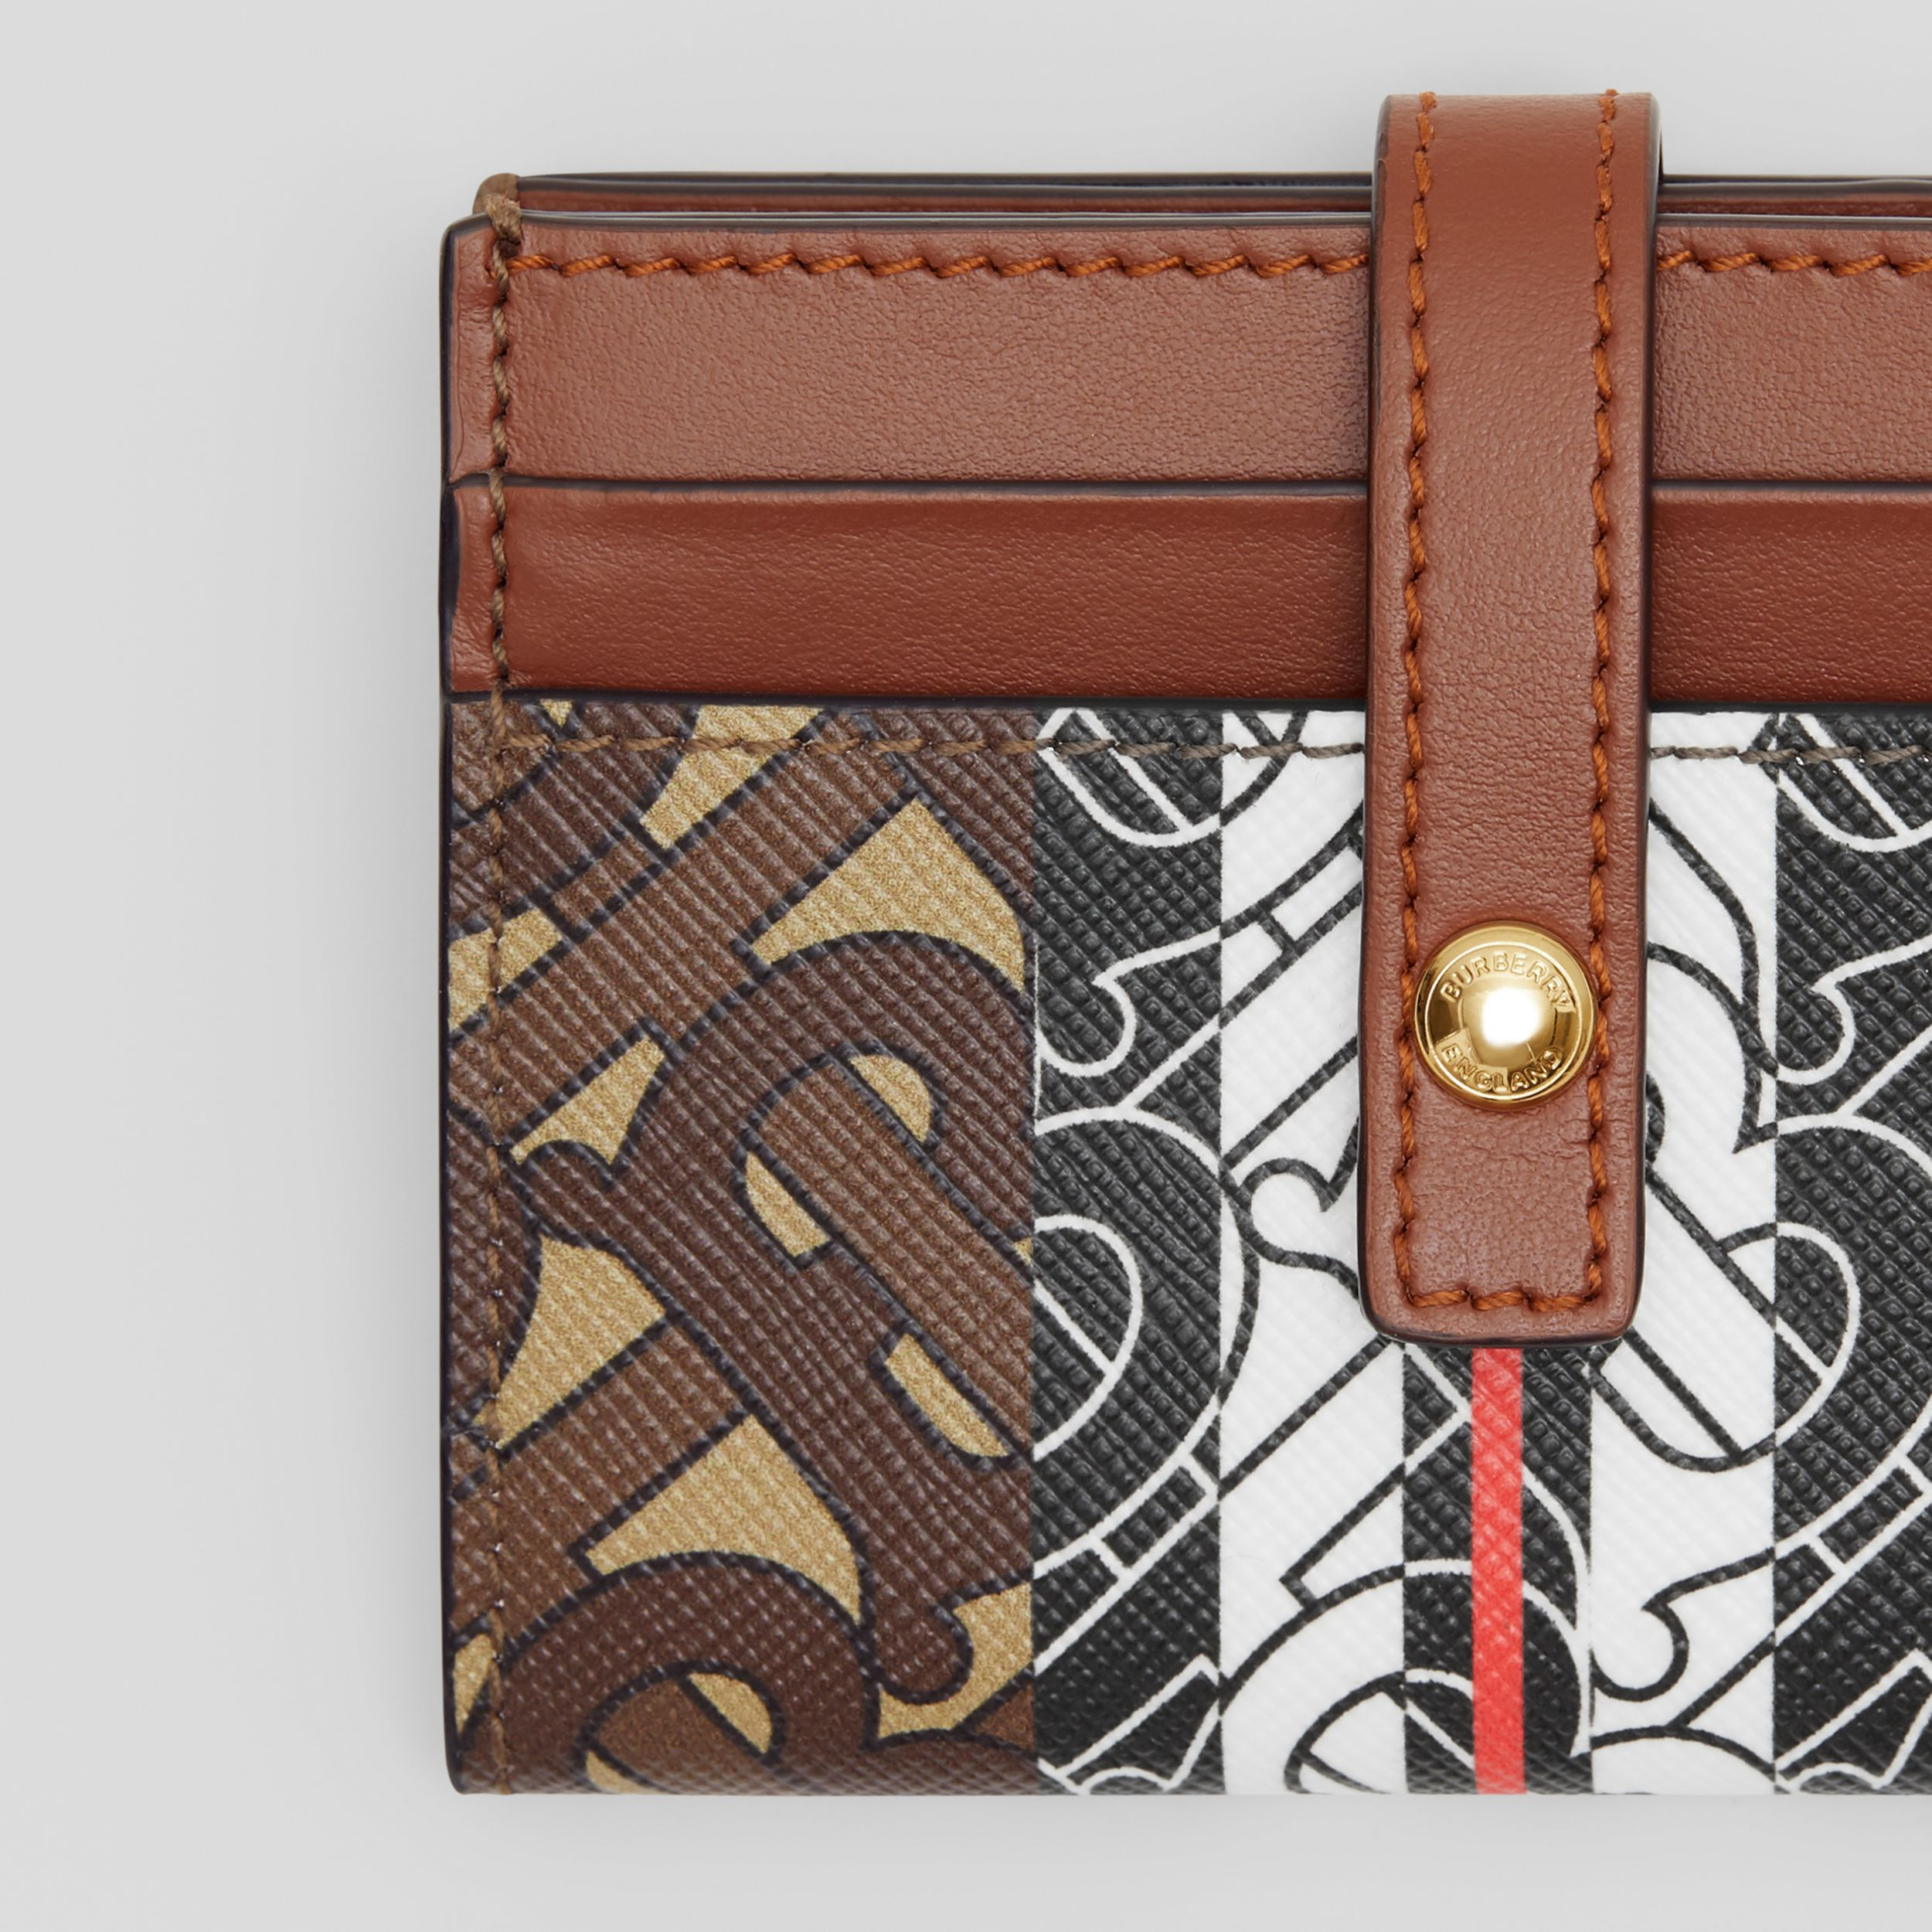 Monogram Stripe E-canvas Folding Card Case in Bridle Brown - Women | Burberry - 2